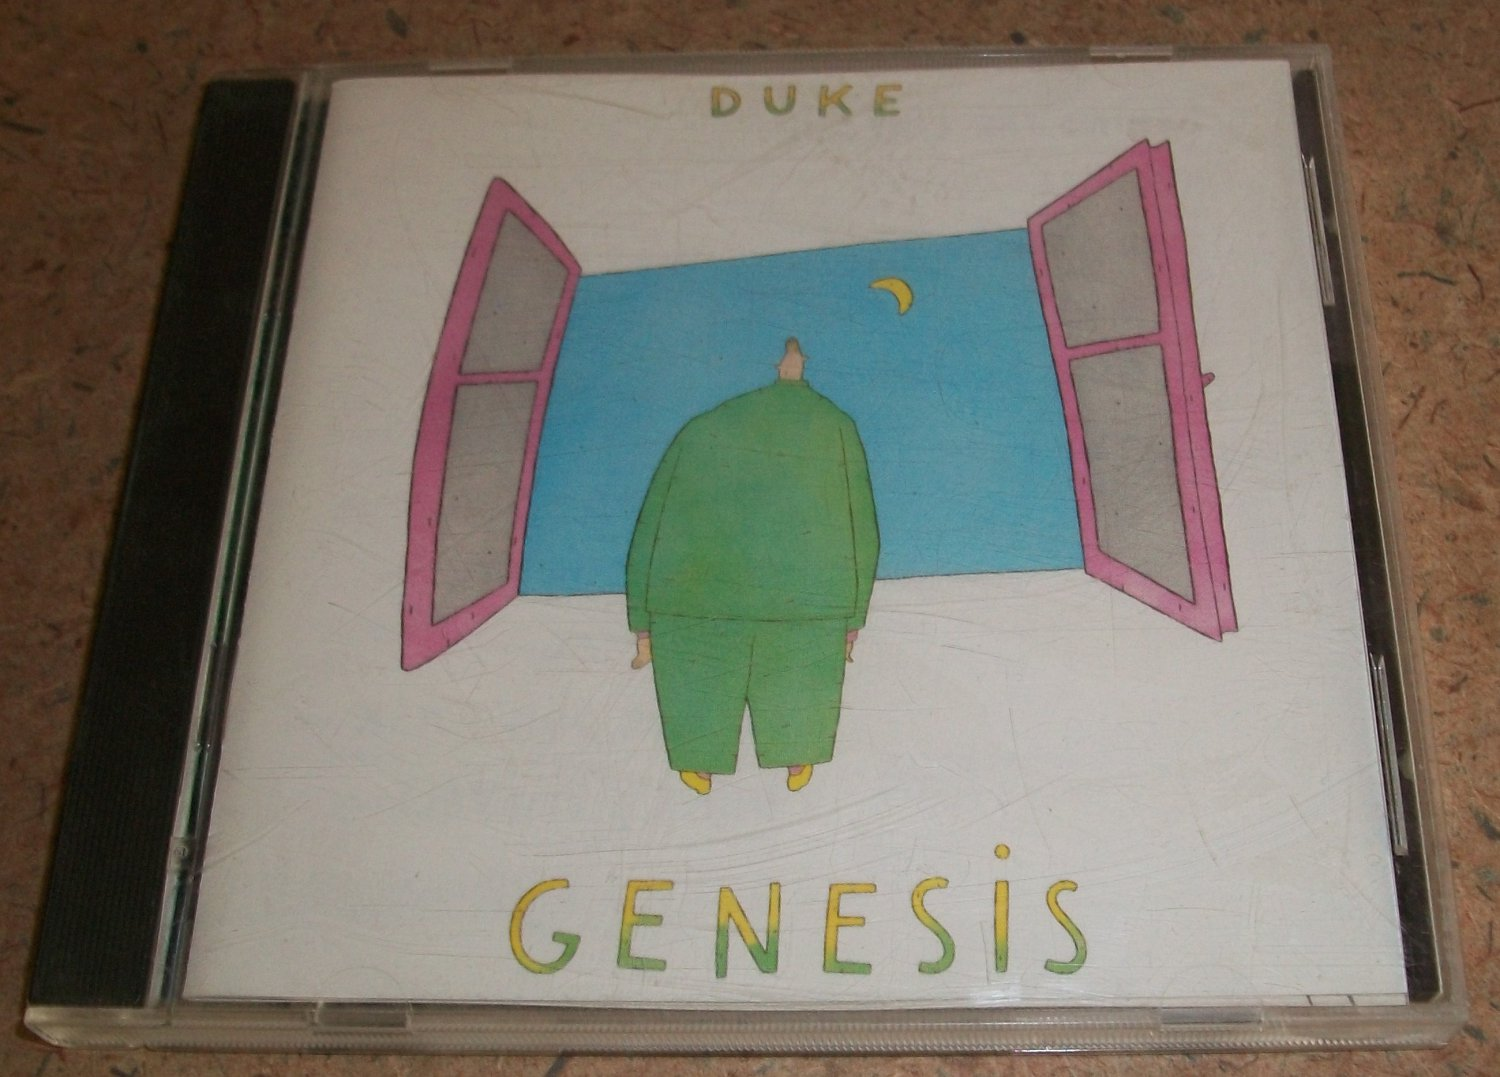 Genesis Phil Collins - Duke - Pop / Rock CD